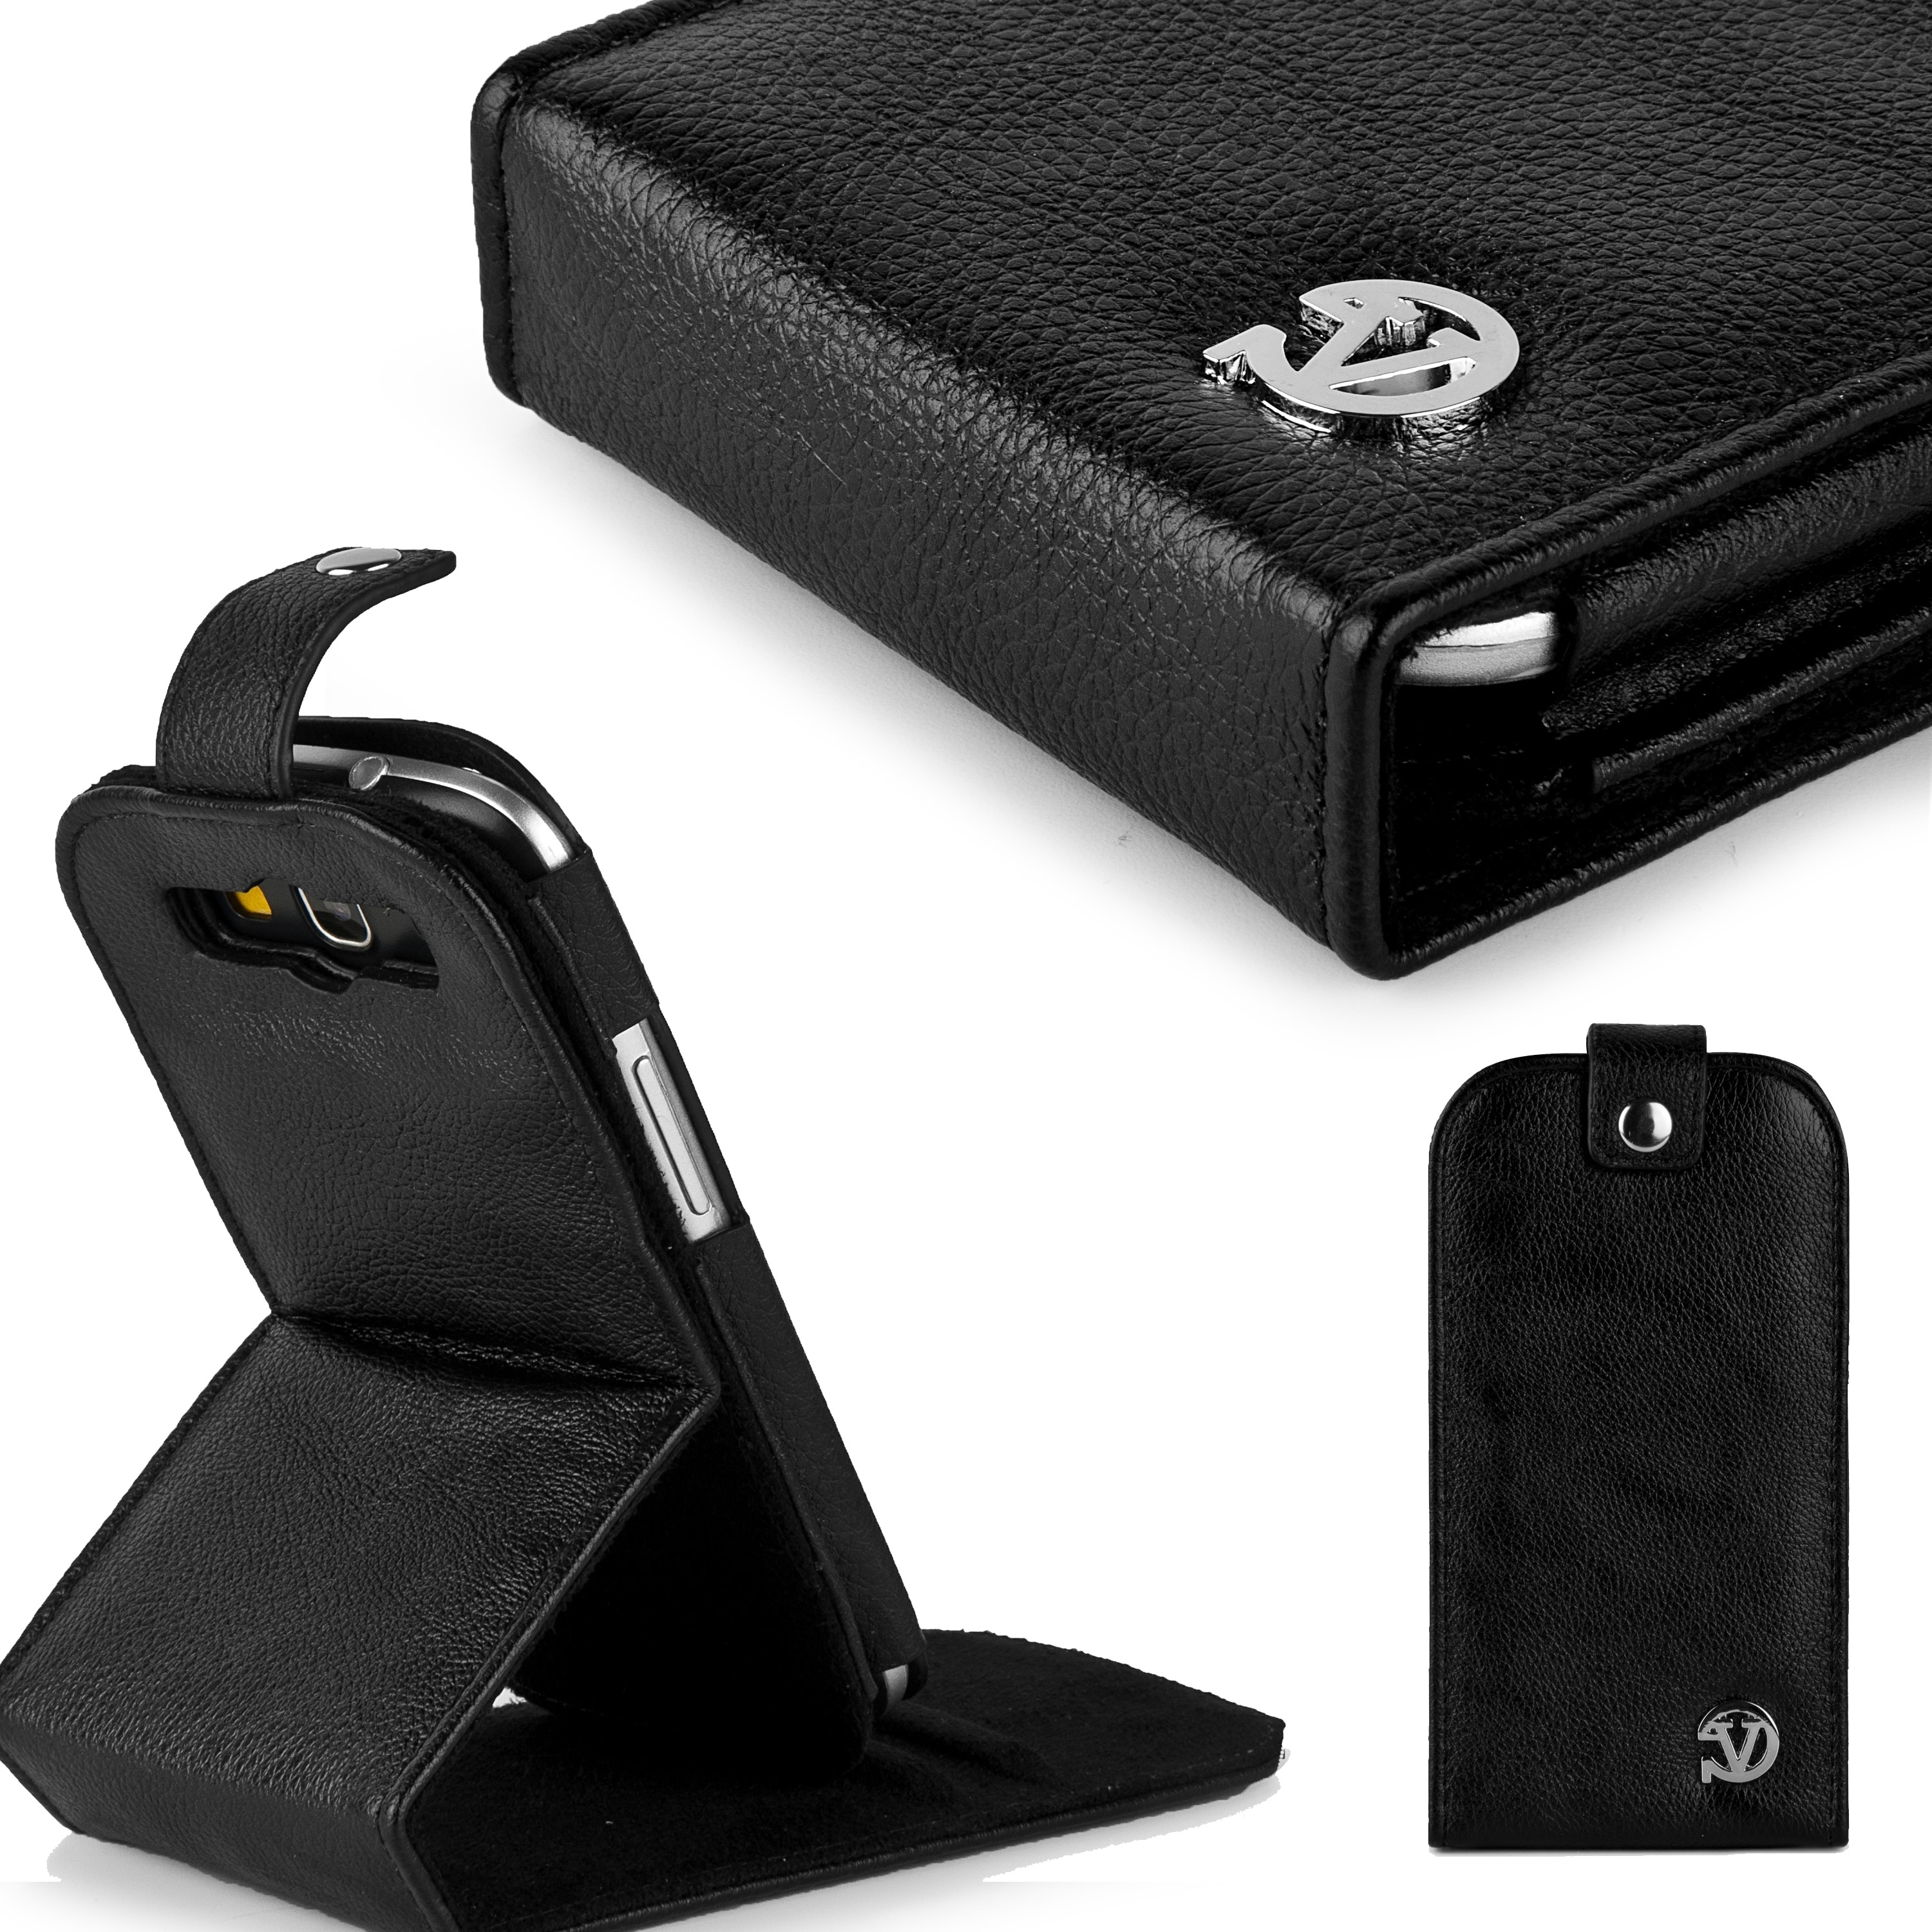 official photos 2de07 283ee Leather Wallet Case Specifically For the Samsung Galaxy S3